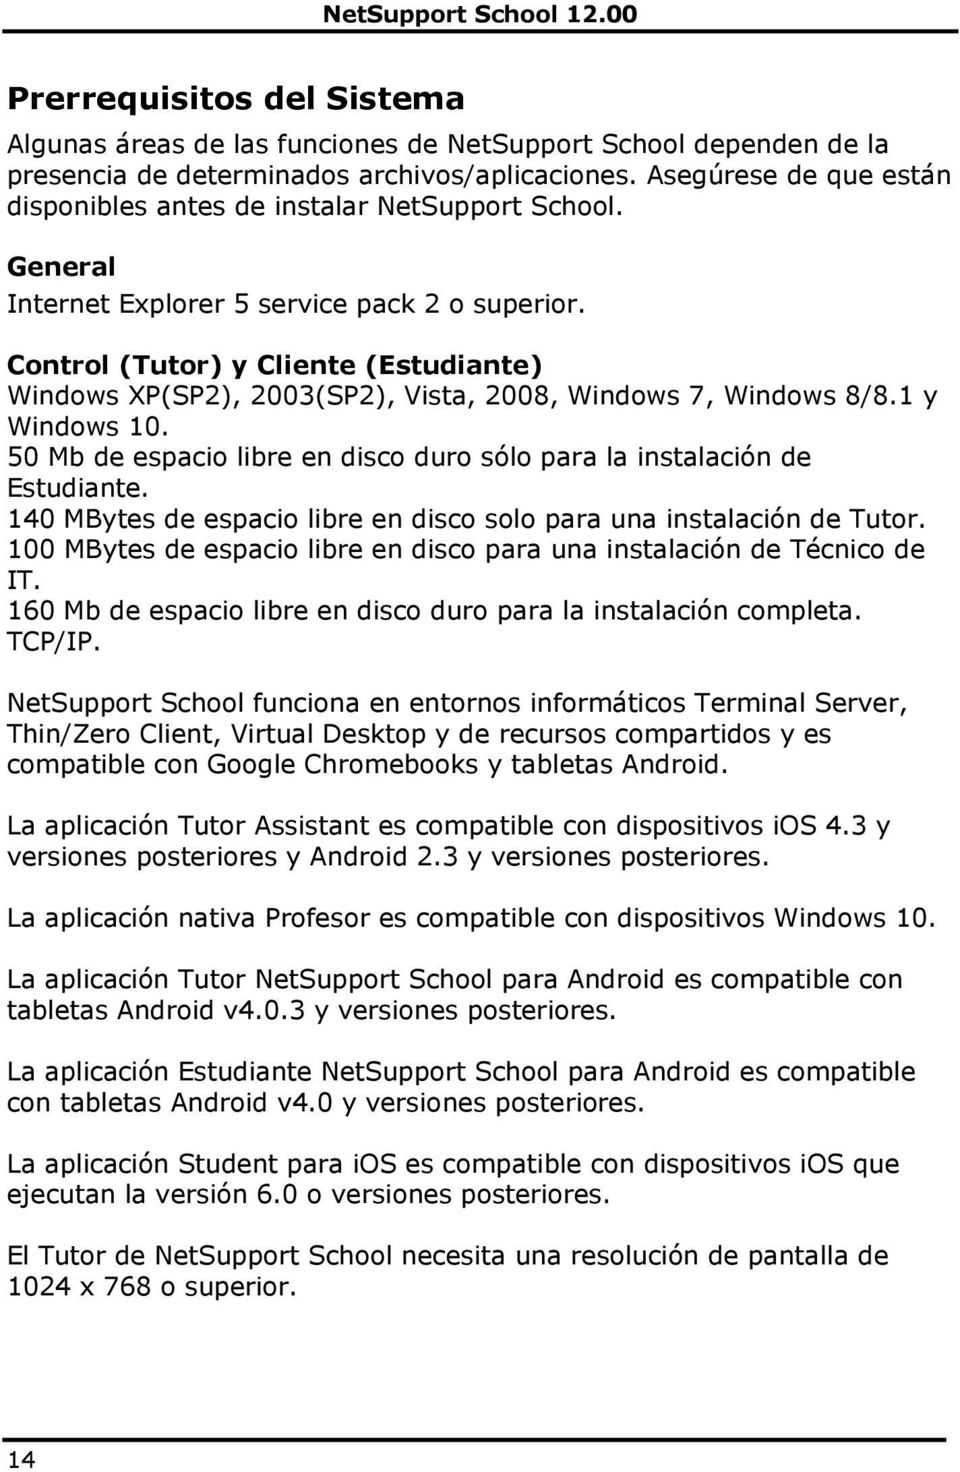 Control (Tutor) y Cliente (Estudiante) Windows XP(SP2), 2003(SP2), Vista, 2008, Windows 7, Windows 8/8.1 y Windows 10. 50 Mb de espacio libre en disco duro sólo para la instalación de Estudiante.